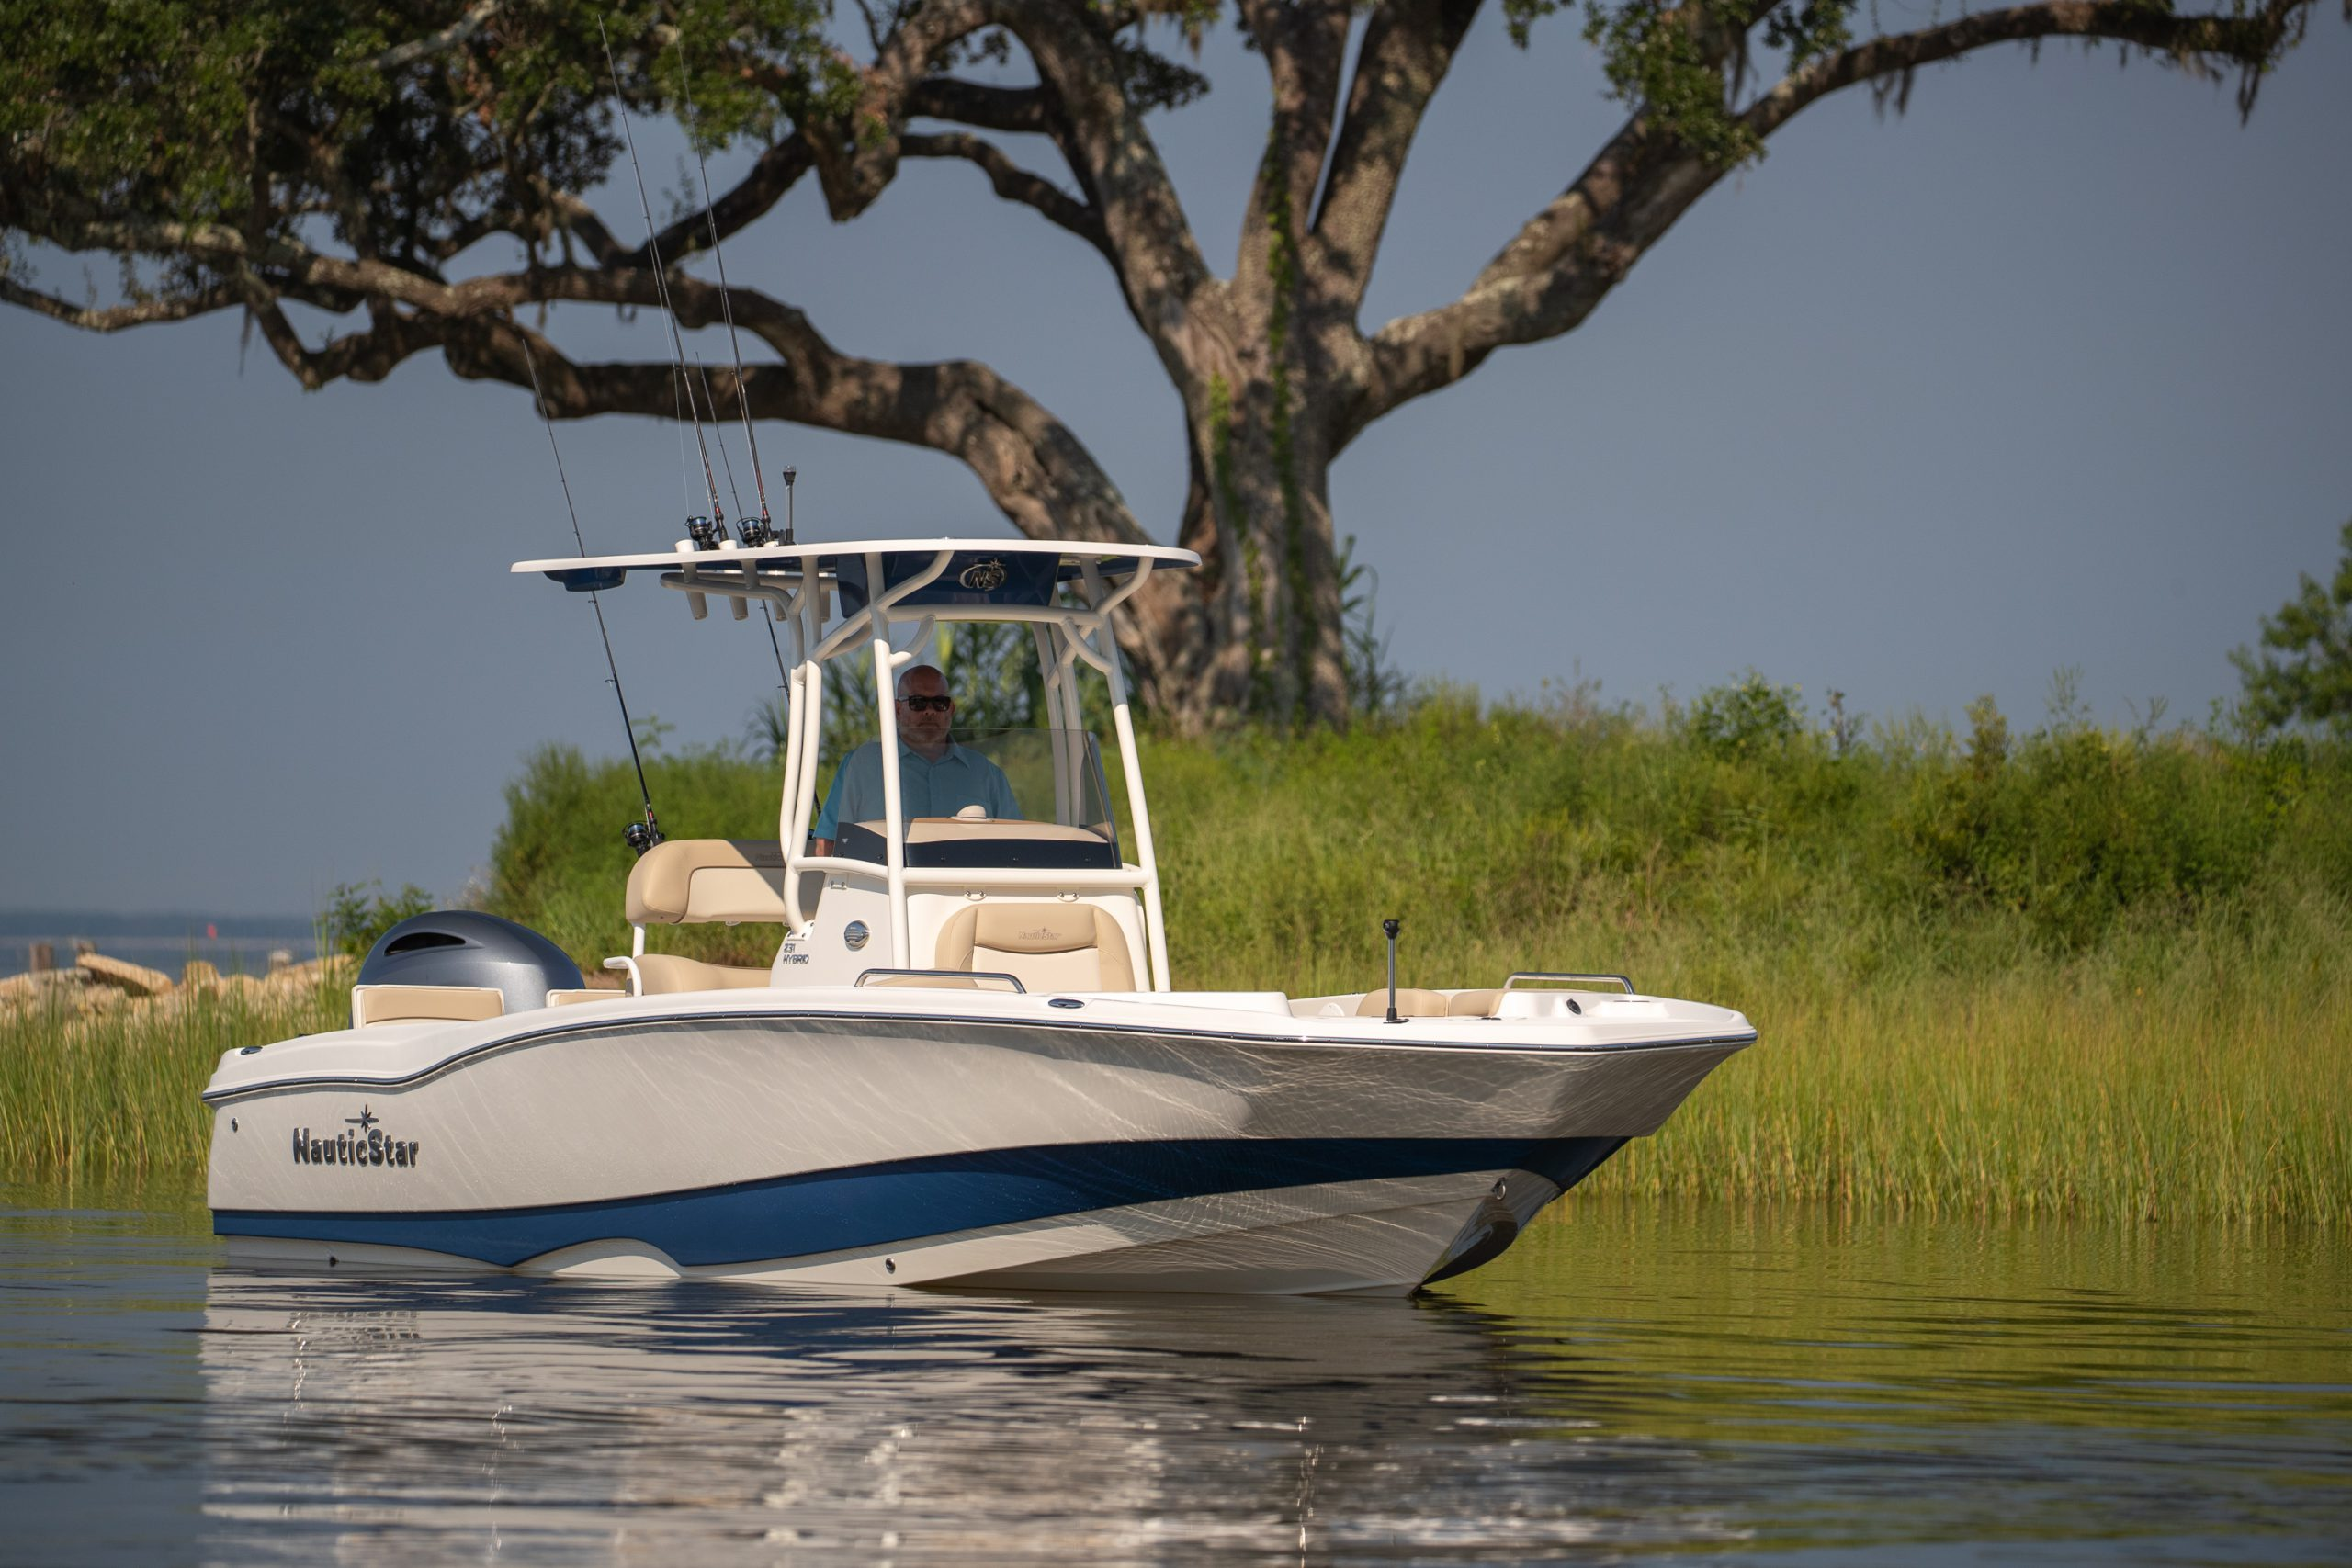 A NauticStar 231 Hybrid boat floats in a beautiful grassy bay bayou